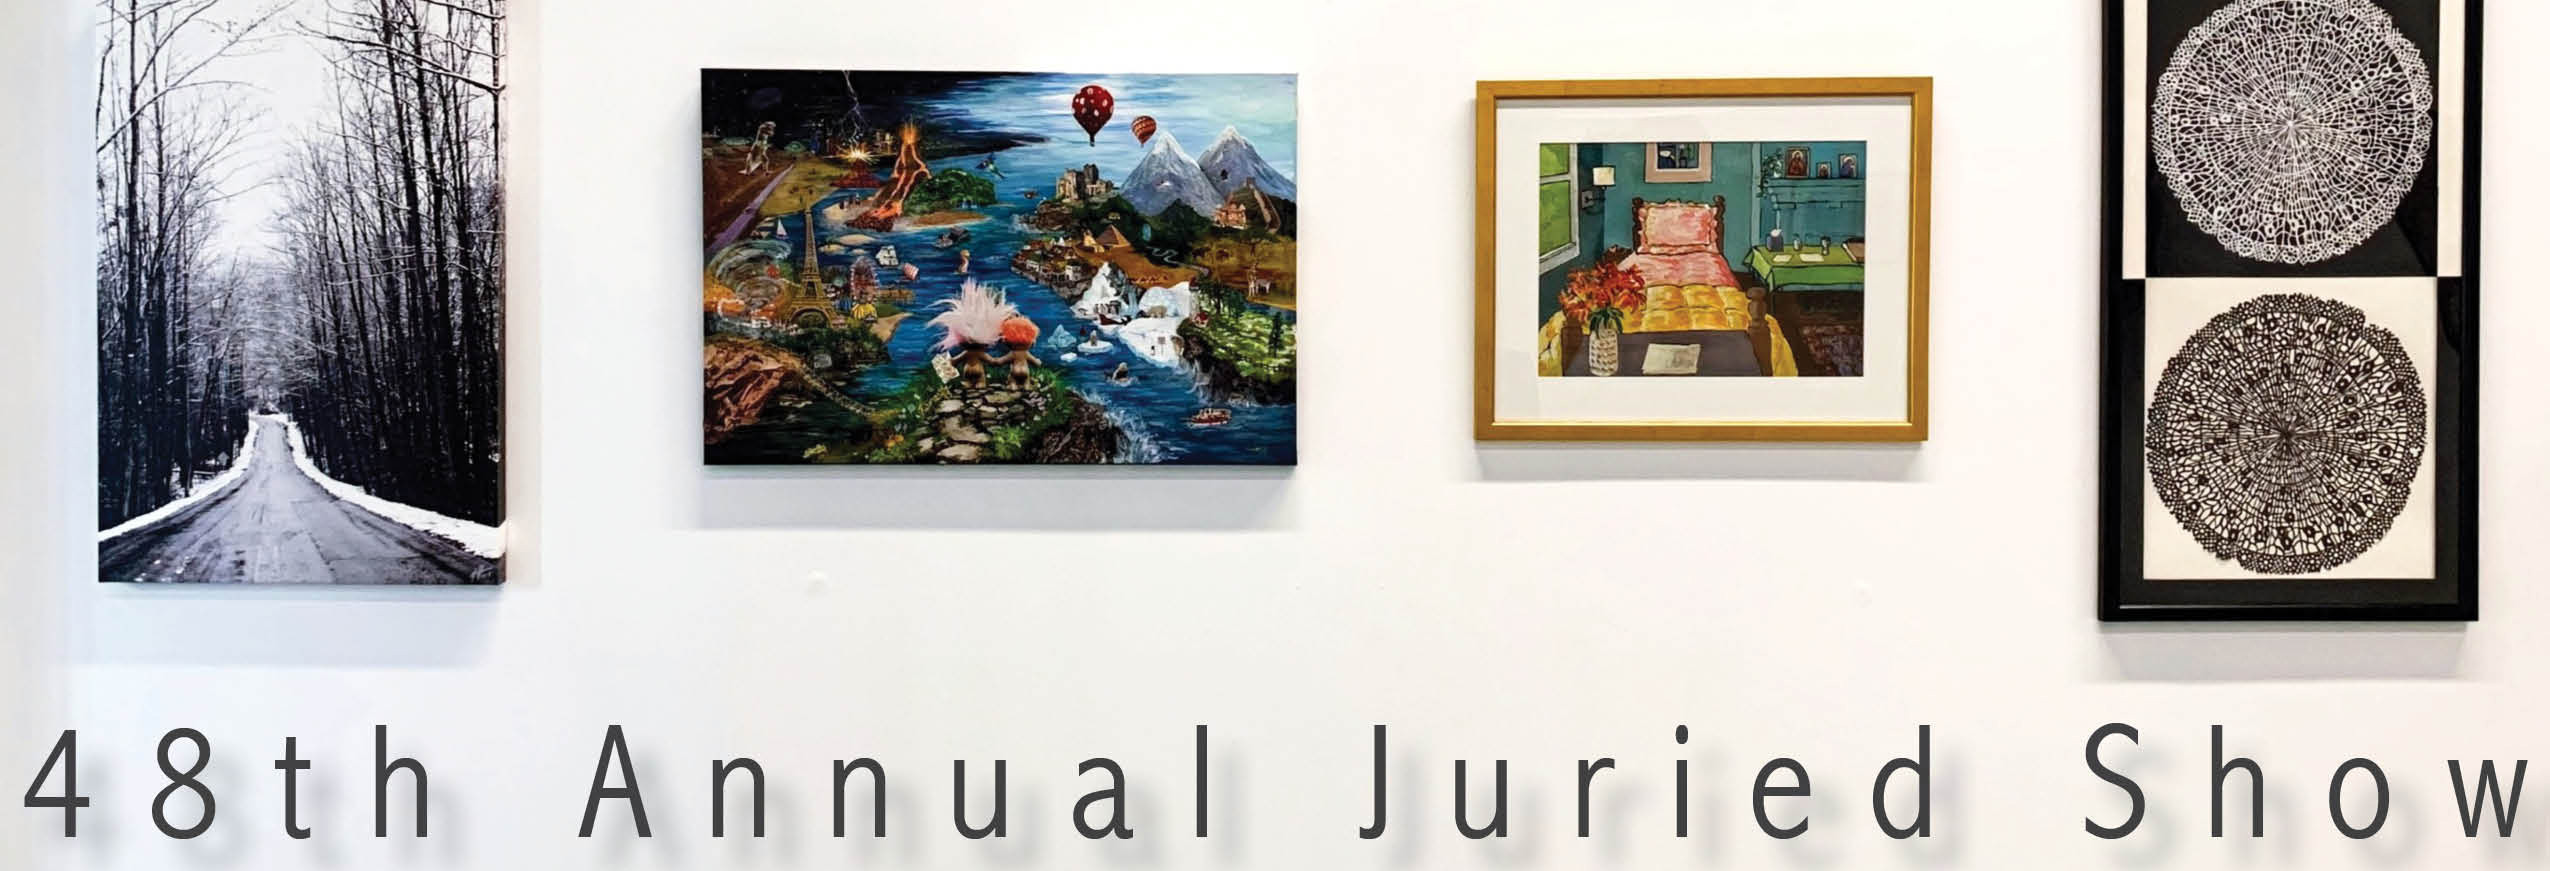 2021 48th Annual Juried Show Poster copy